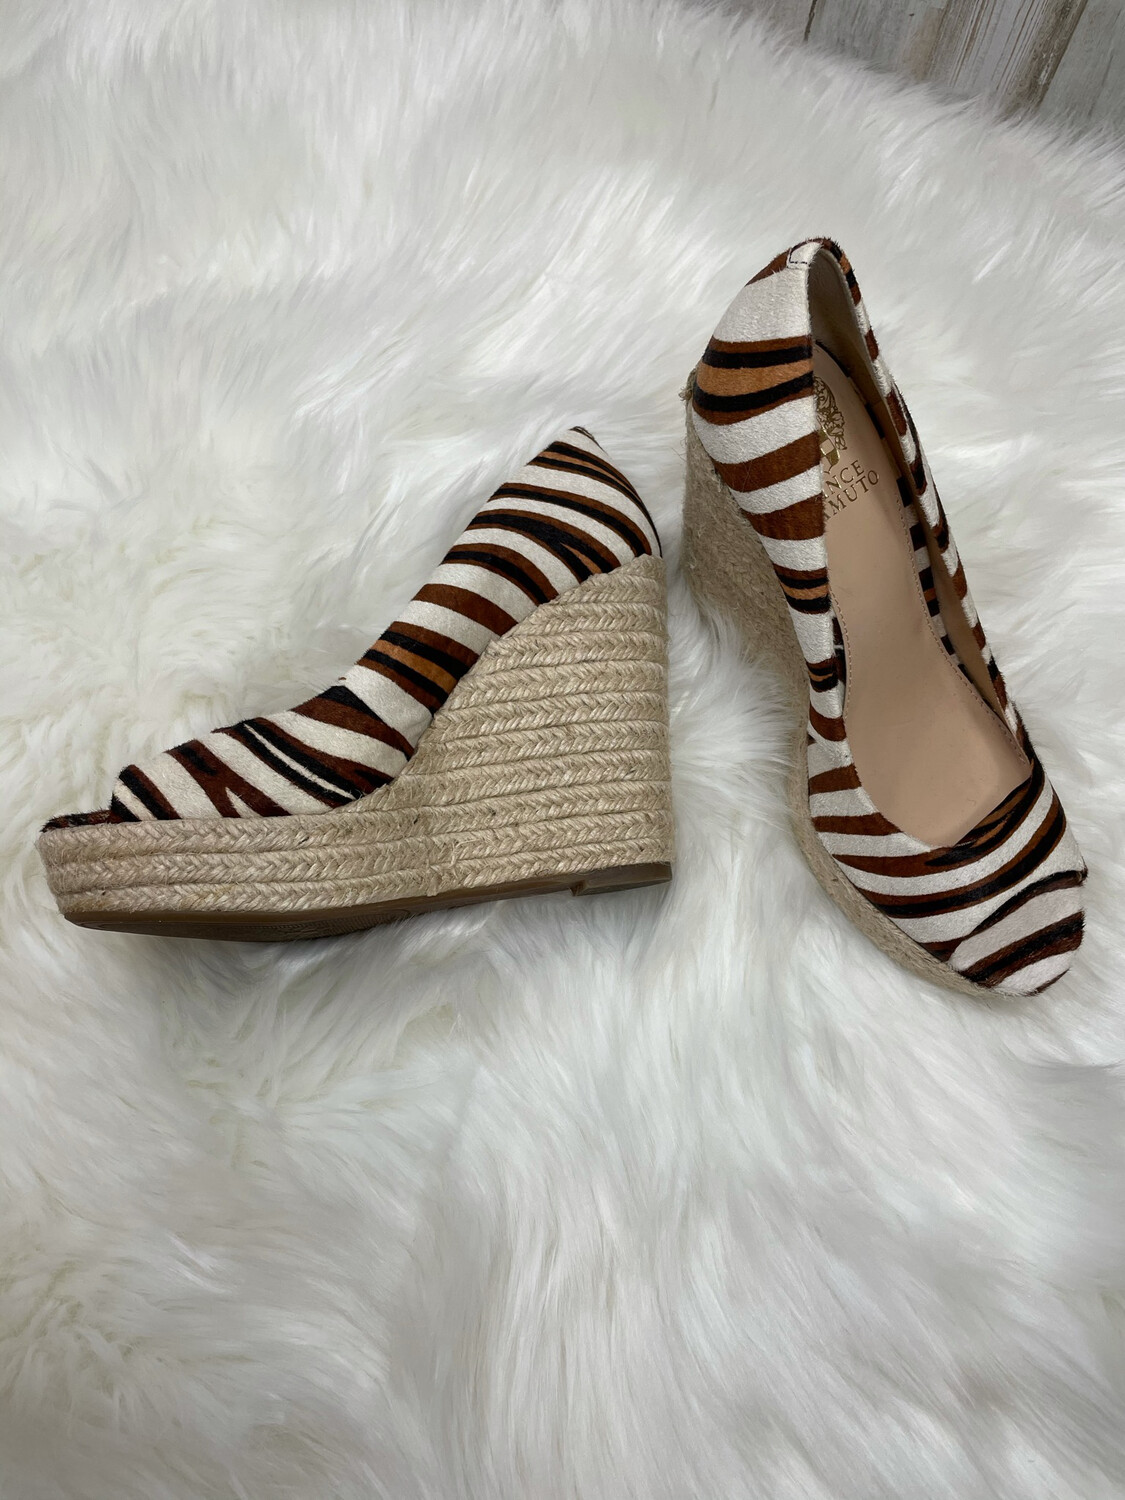 Vince Camuto Brown & White Peep Toe Wedges - Size 7